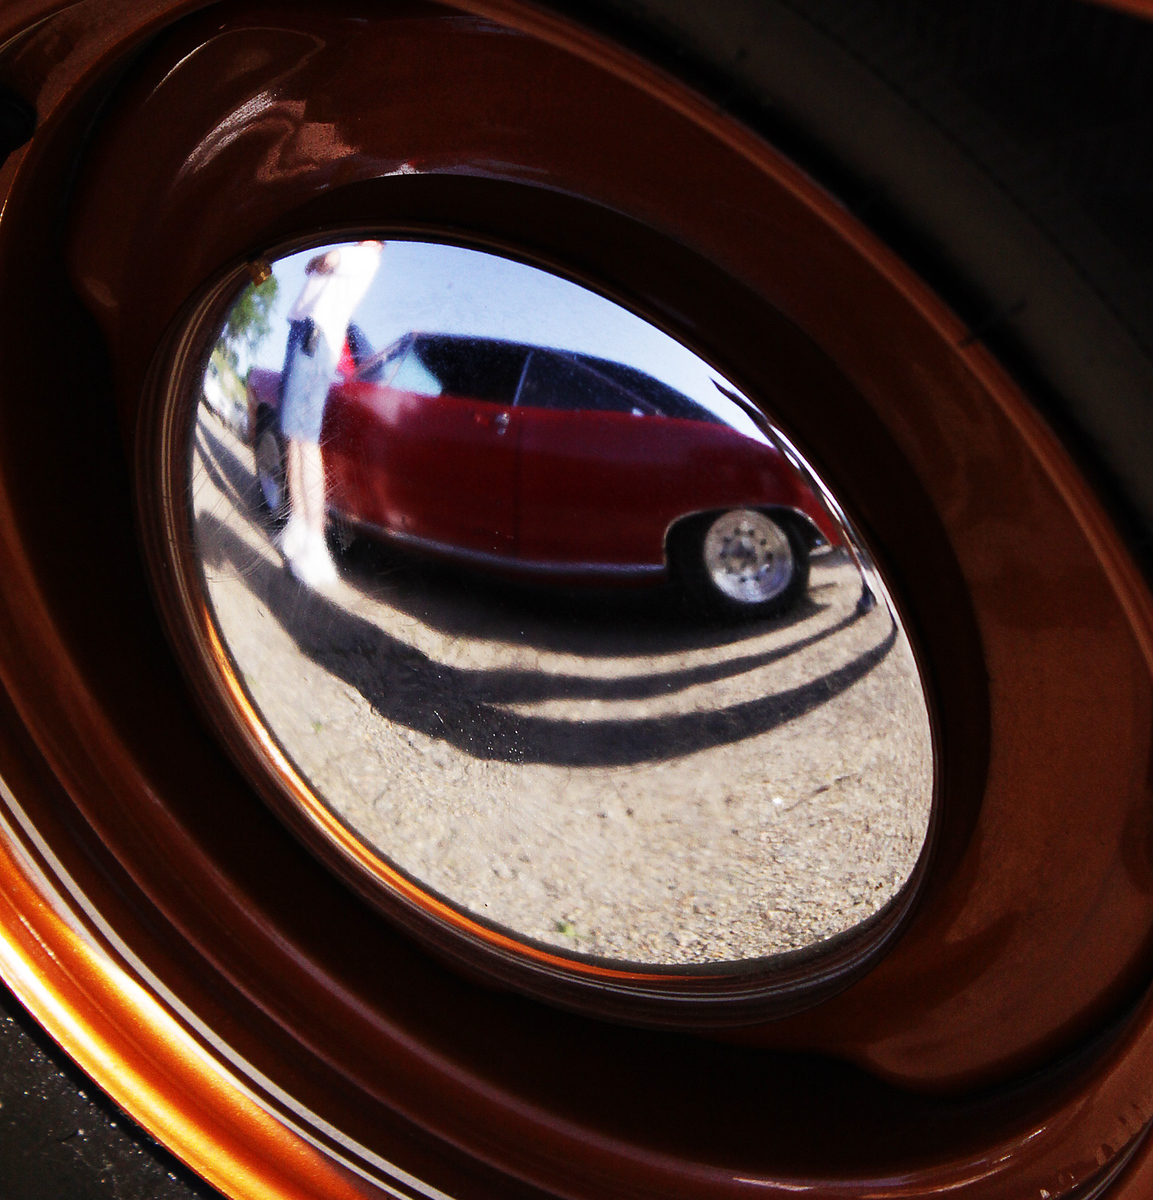 A dodge duster is seen in the reflection of a Ford Fairlane hubcap.